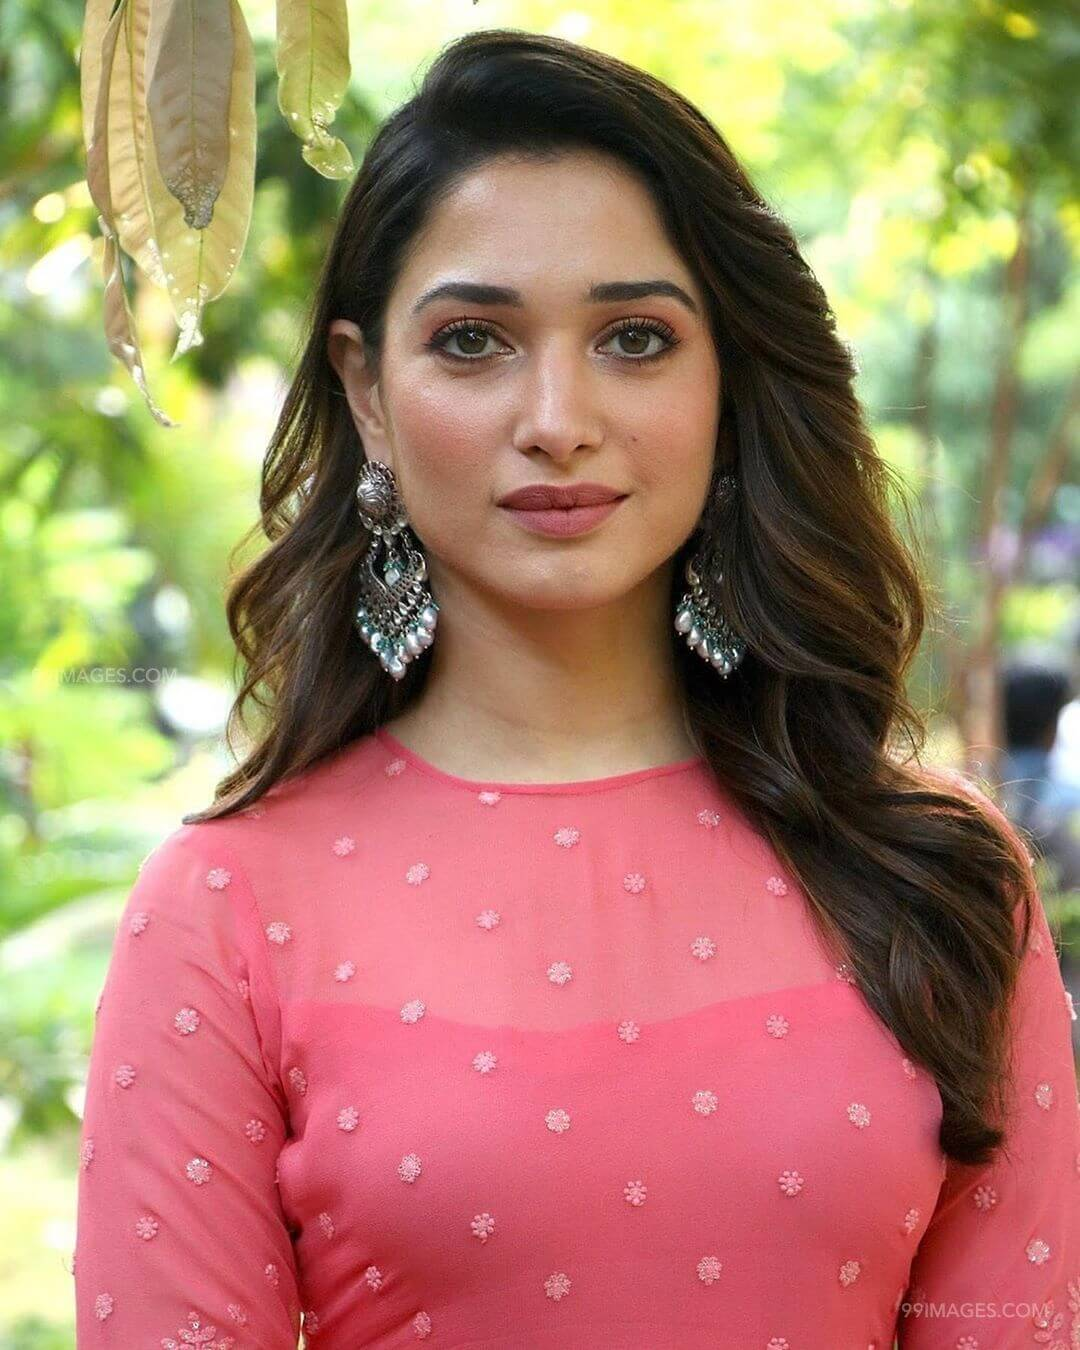 Tamannaah Bhatia Photos(images), Height, Biography, Movies, Date Of Birth, House, Details, Marriage, Boyfriend, Net Worth, Education, Instagram, Facebook, Twitter, Wiki, Imdb, Youtube (64)